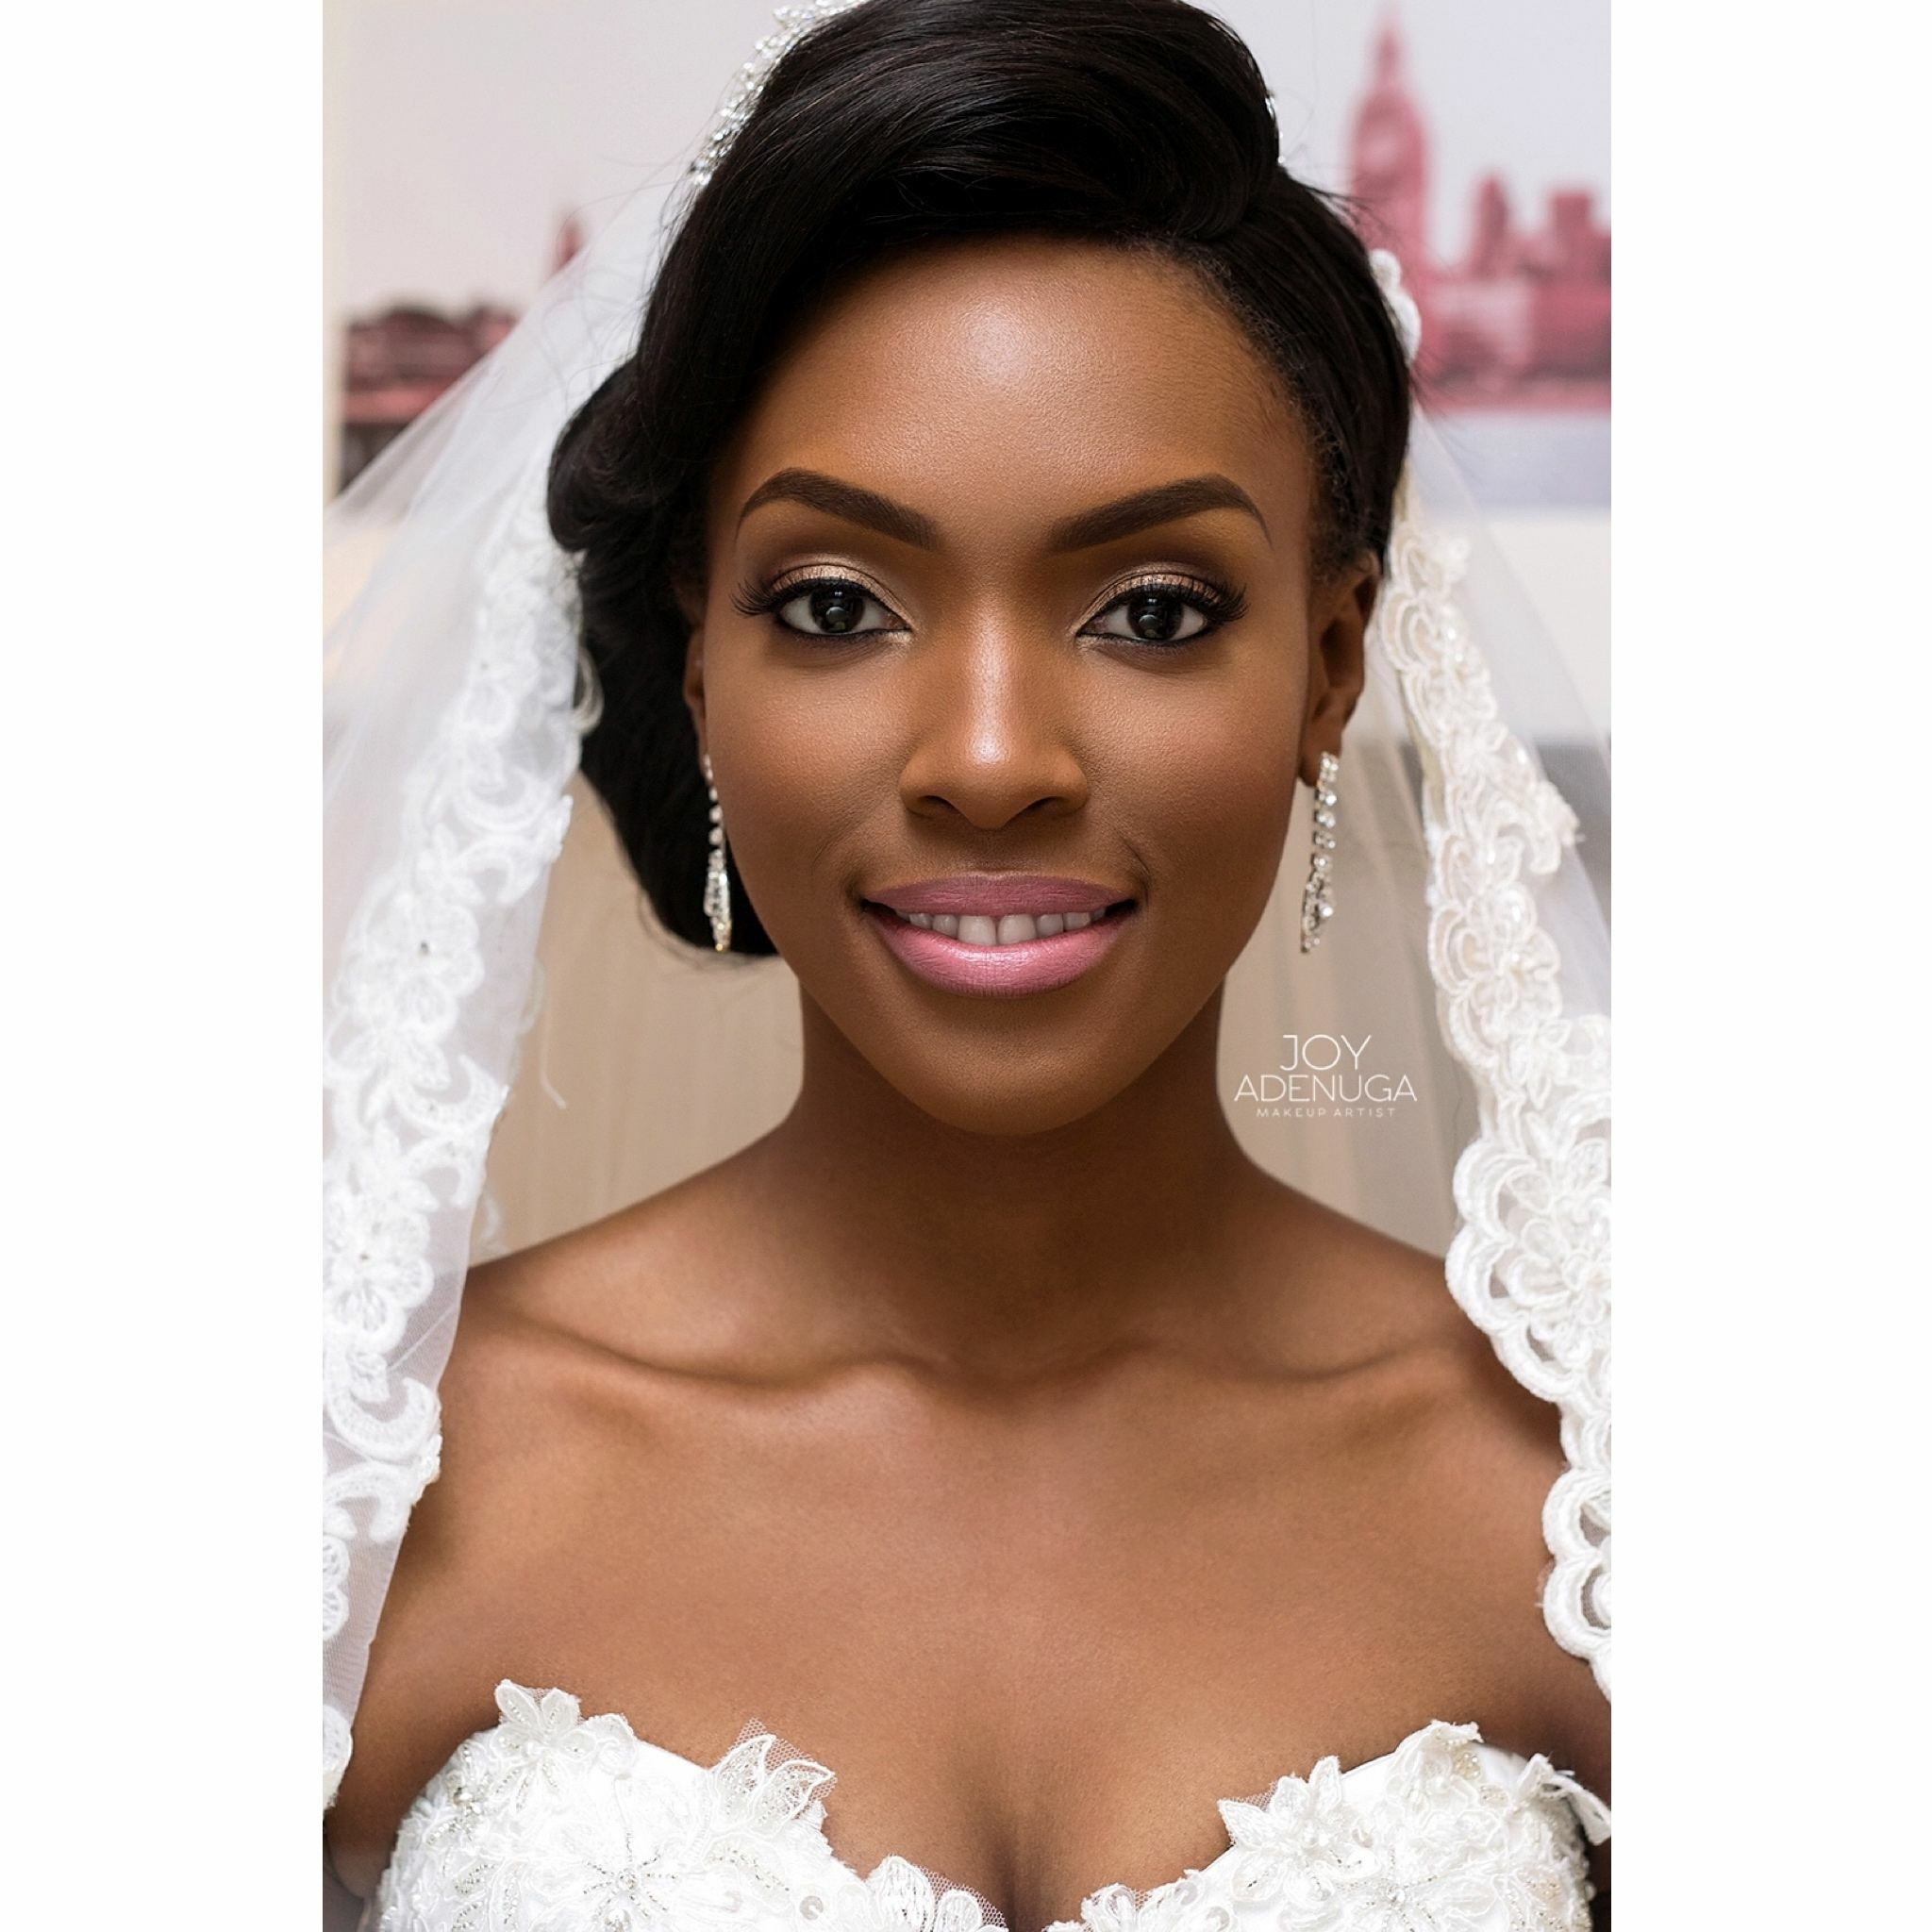 Joy Adenuga Makeup Artist Joy-adenuga-london-makeup ...